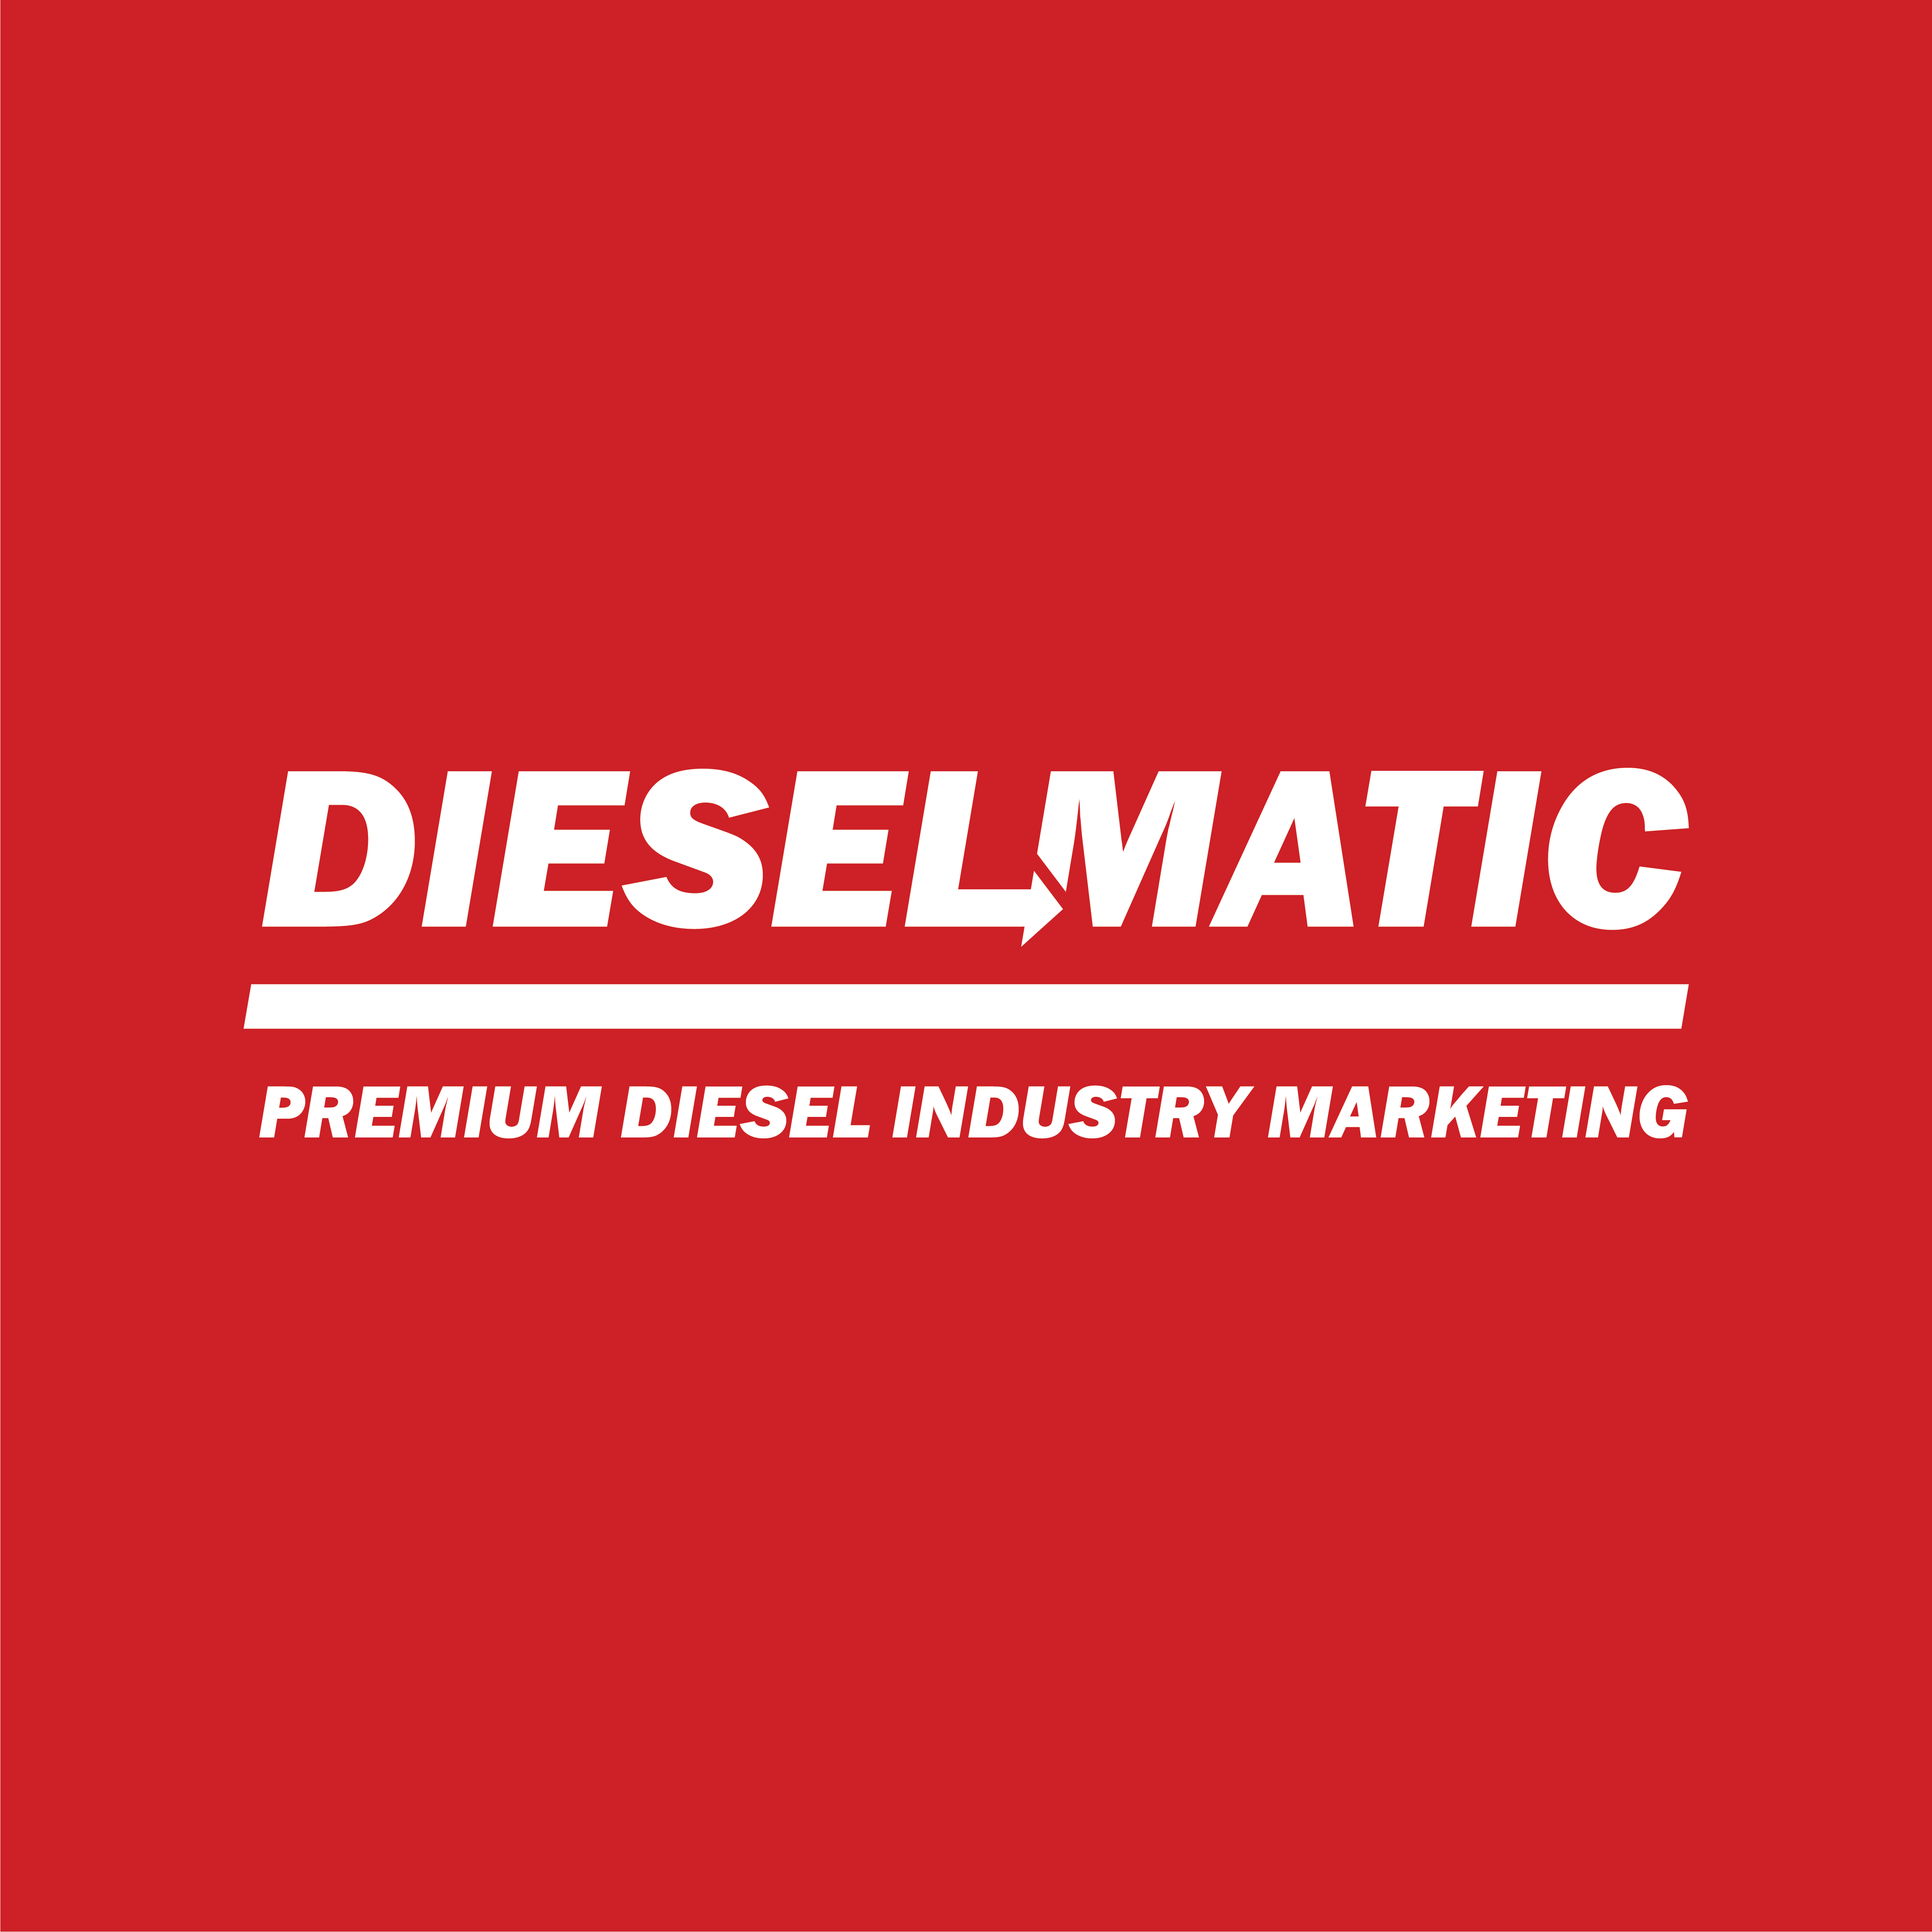 Add Dieselmatic as a delegate to access GoDaddy account